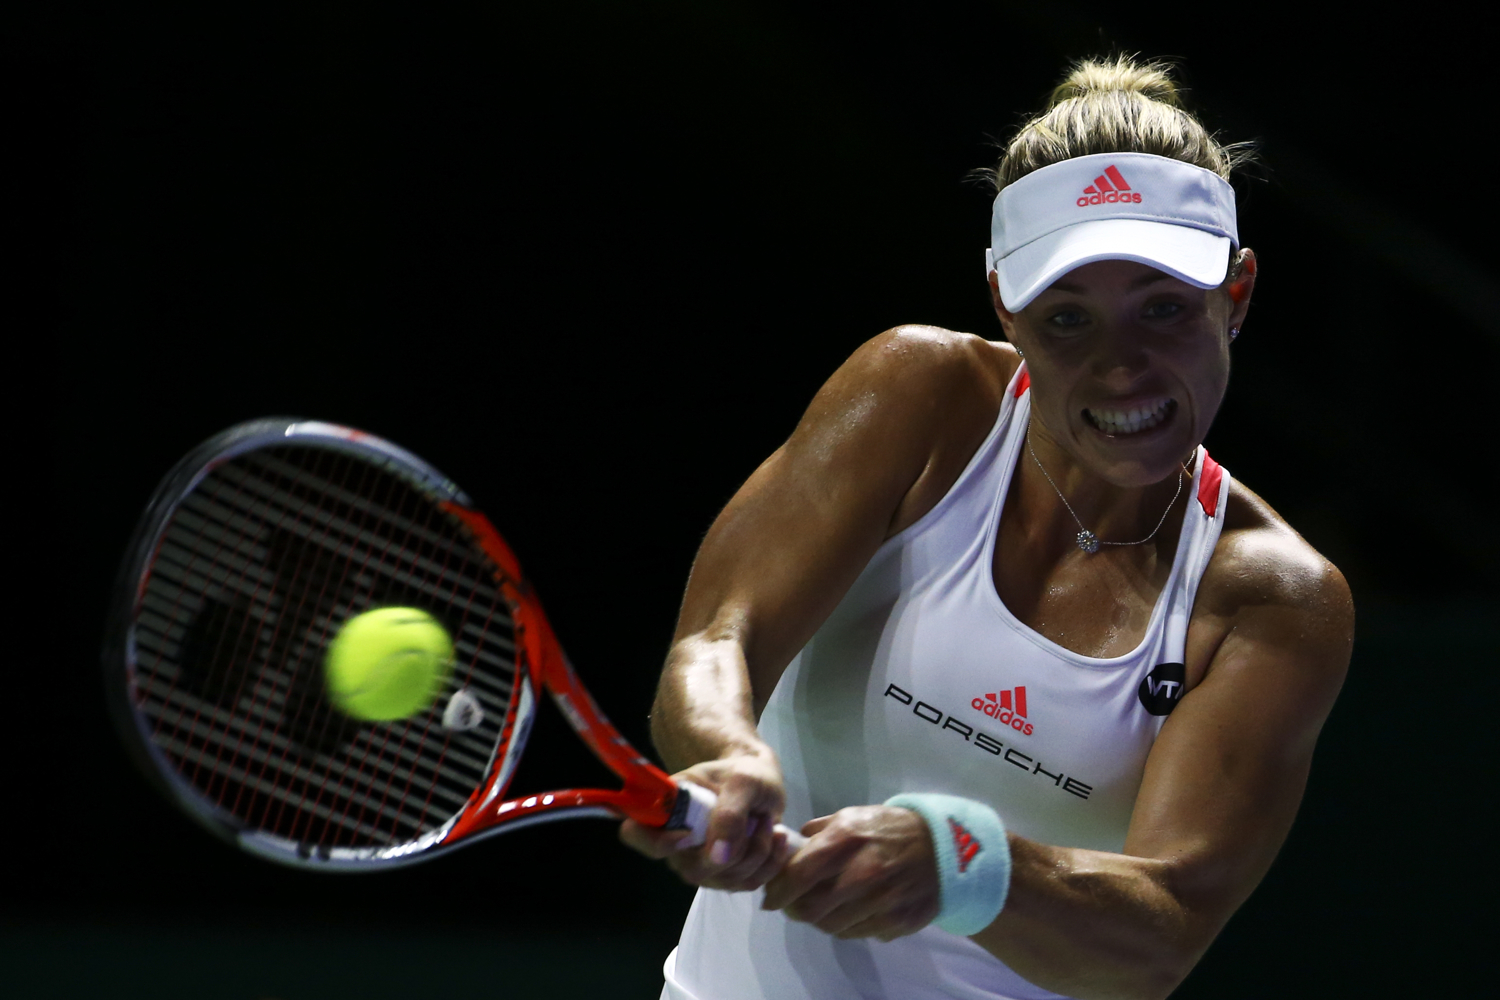 Tennis - BNP Paribas WTA Finals - Singapore Indoor Stadium - 25/10/16 Germany's Angelique Kerber in action during her round robin match Mandatory Credit: Action Images / Yong Teck Lim Livepic EDITORIAL USE ONLY.